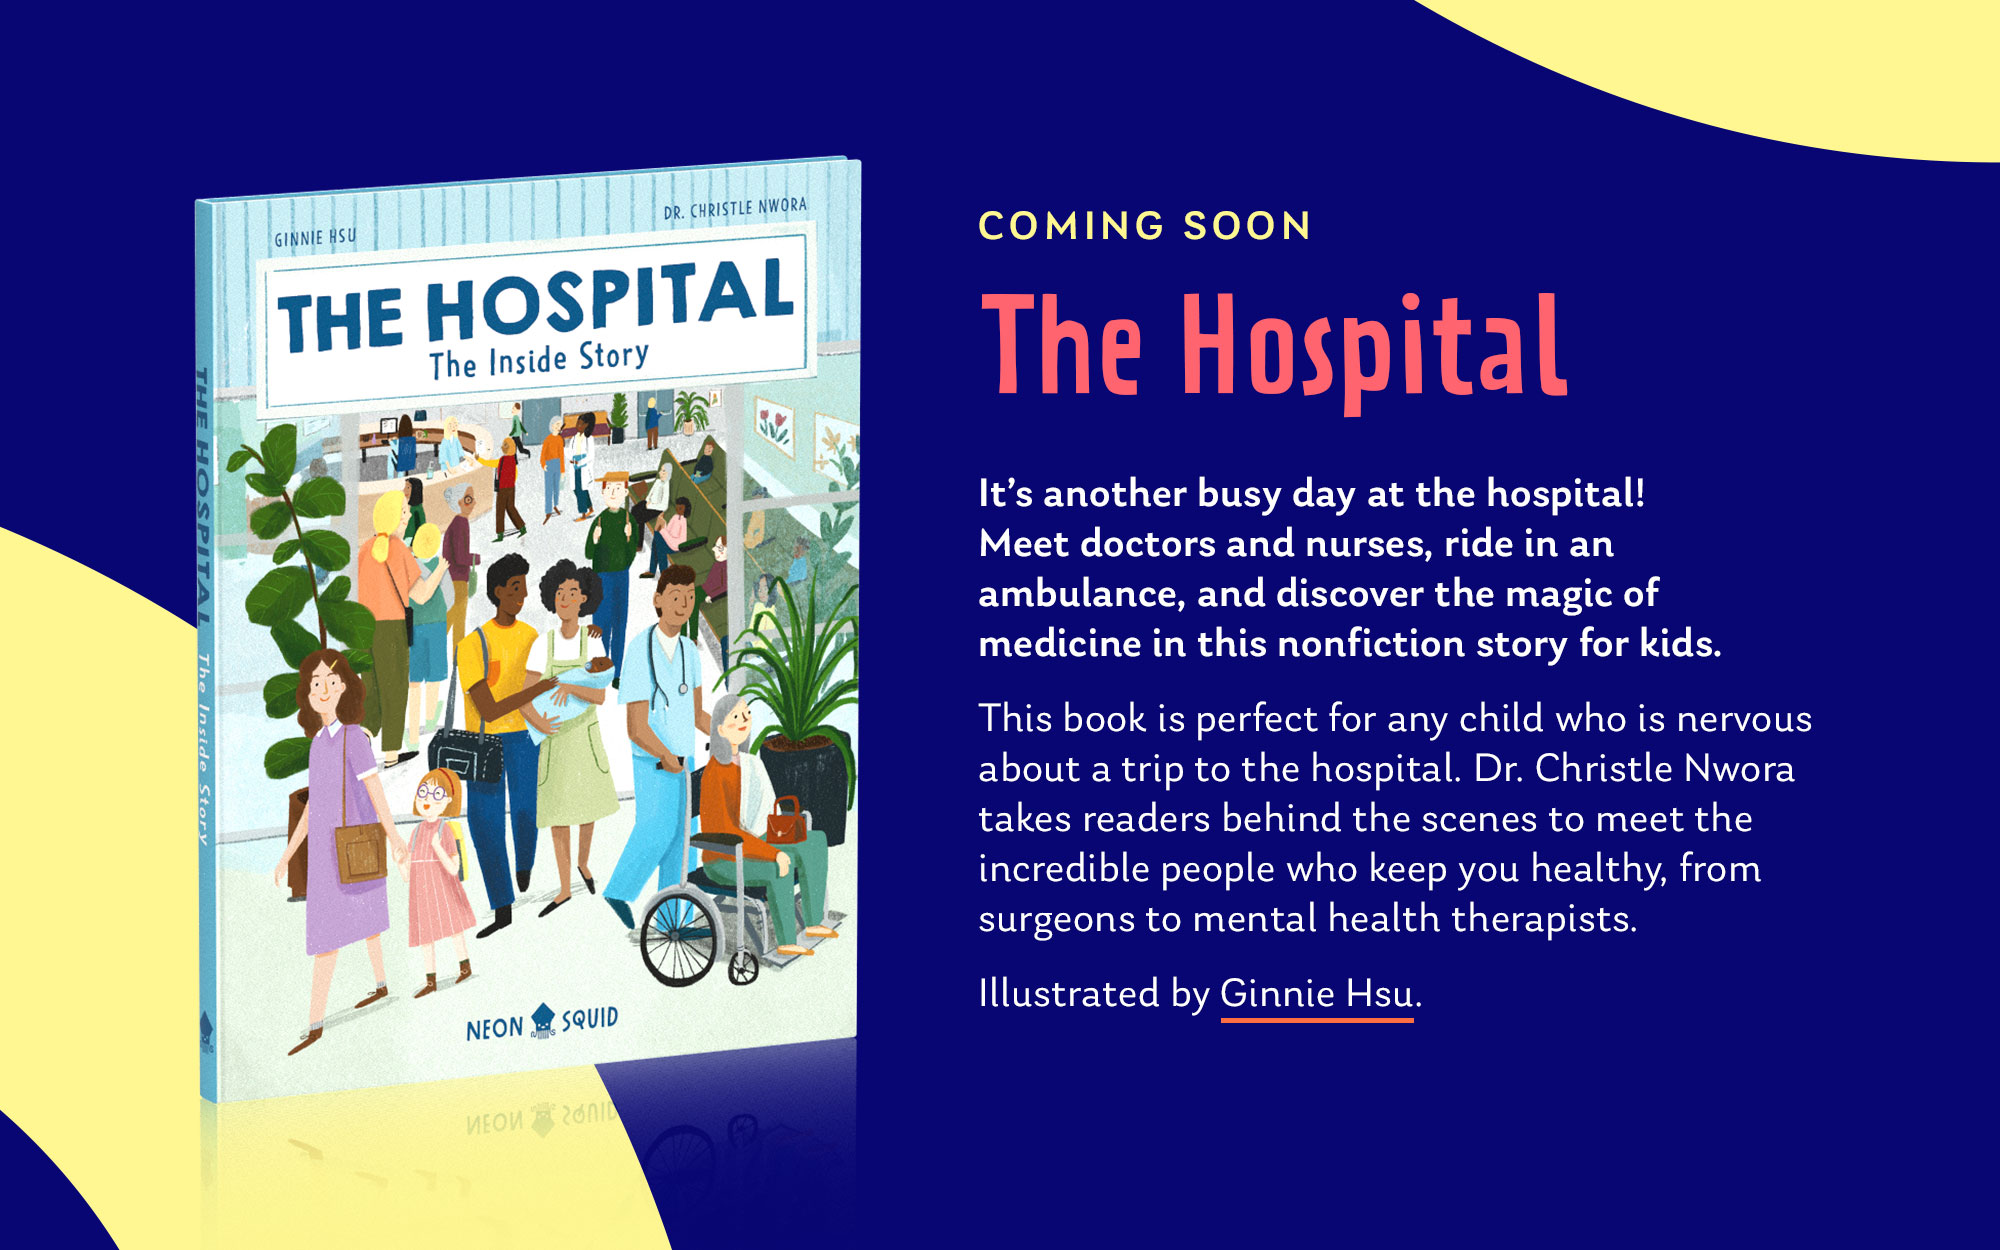 """Showing an upcoming book titled """"The Hospital"""", alongside some Neon Squid fonts, colours and tentacle graphics."""